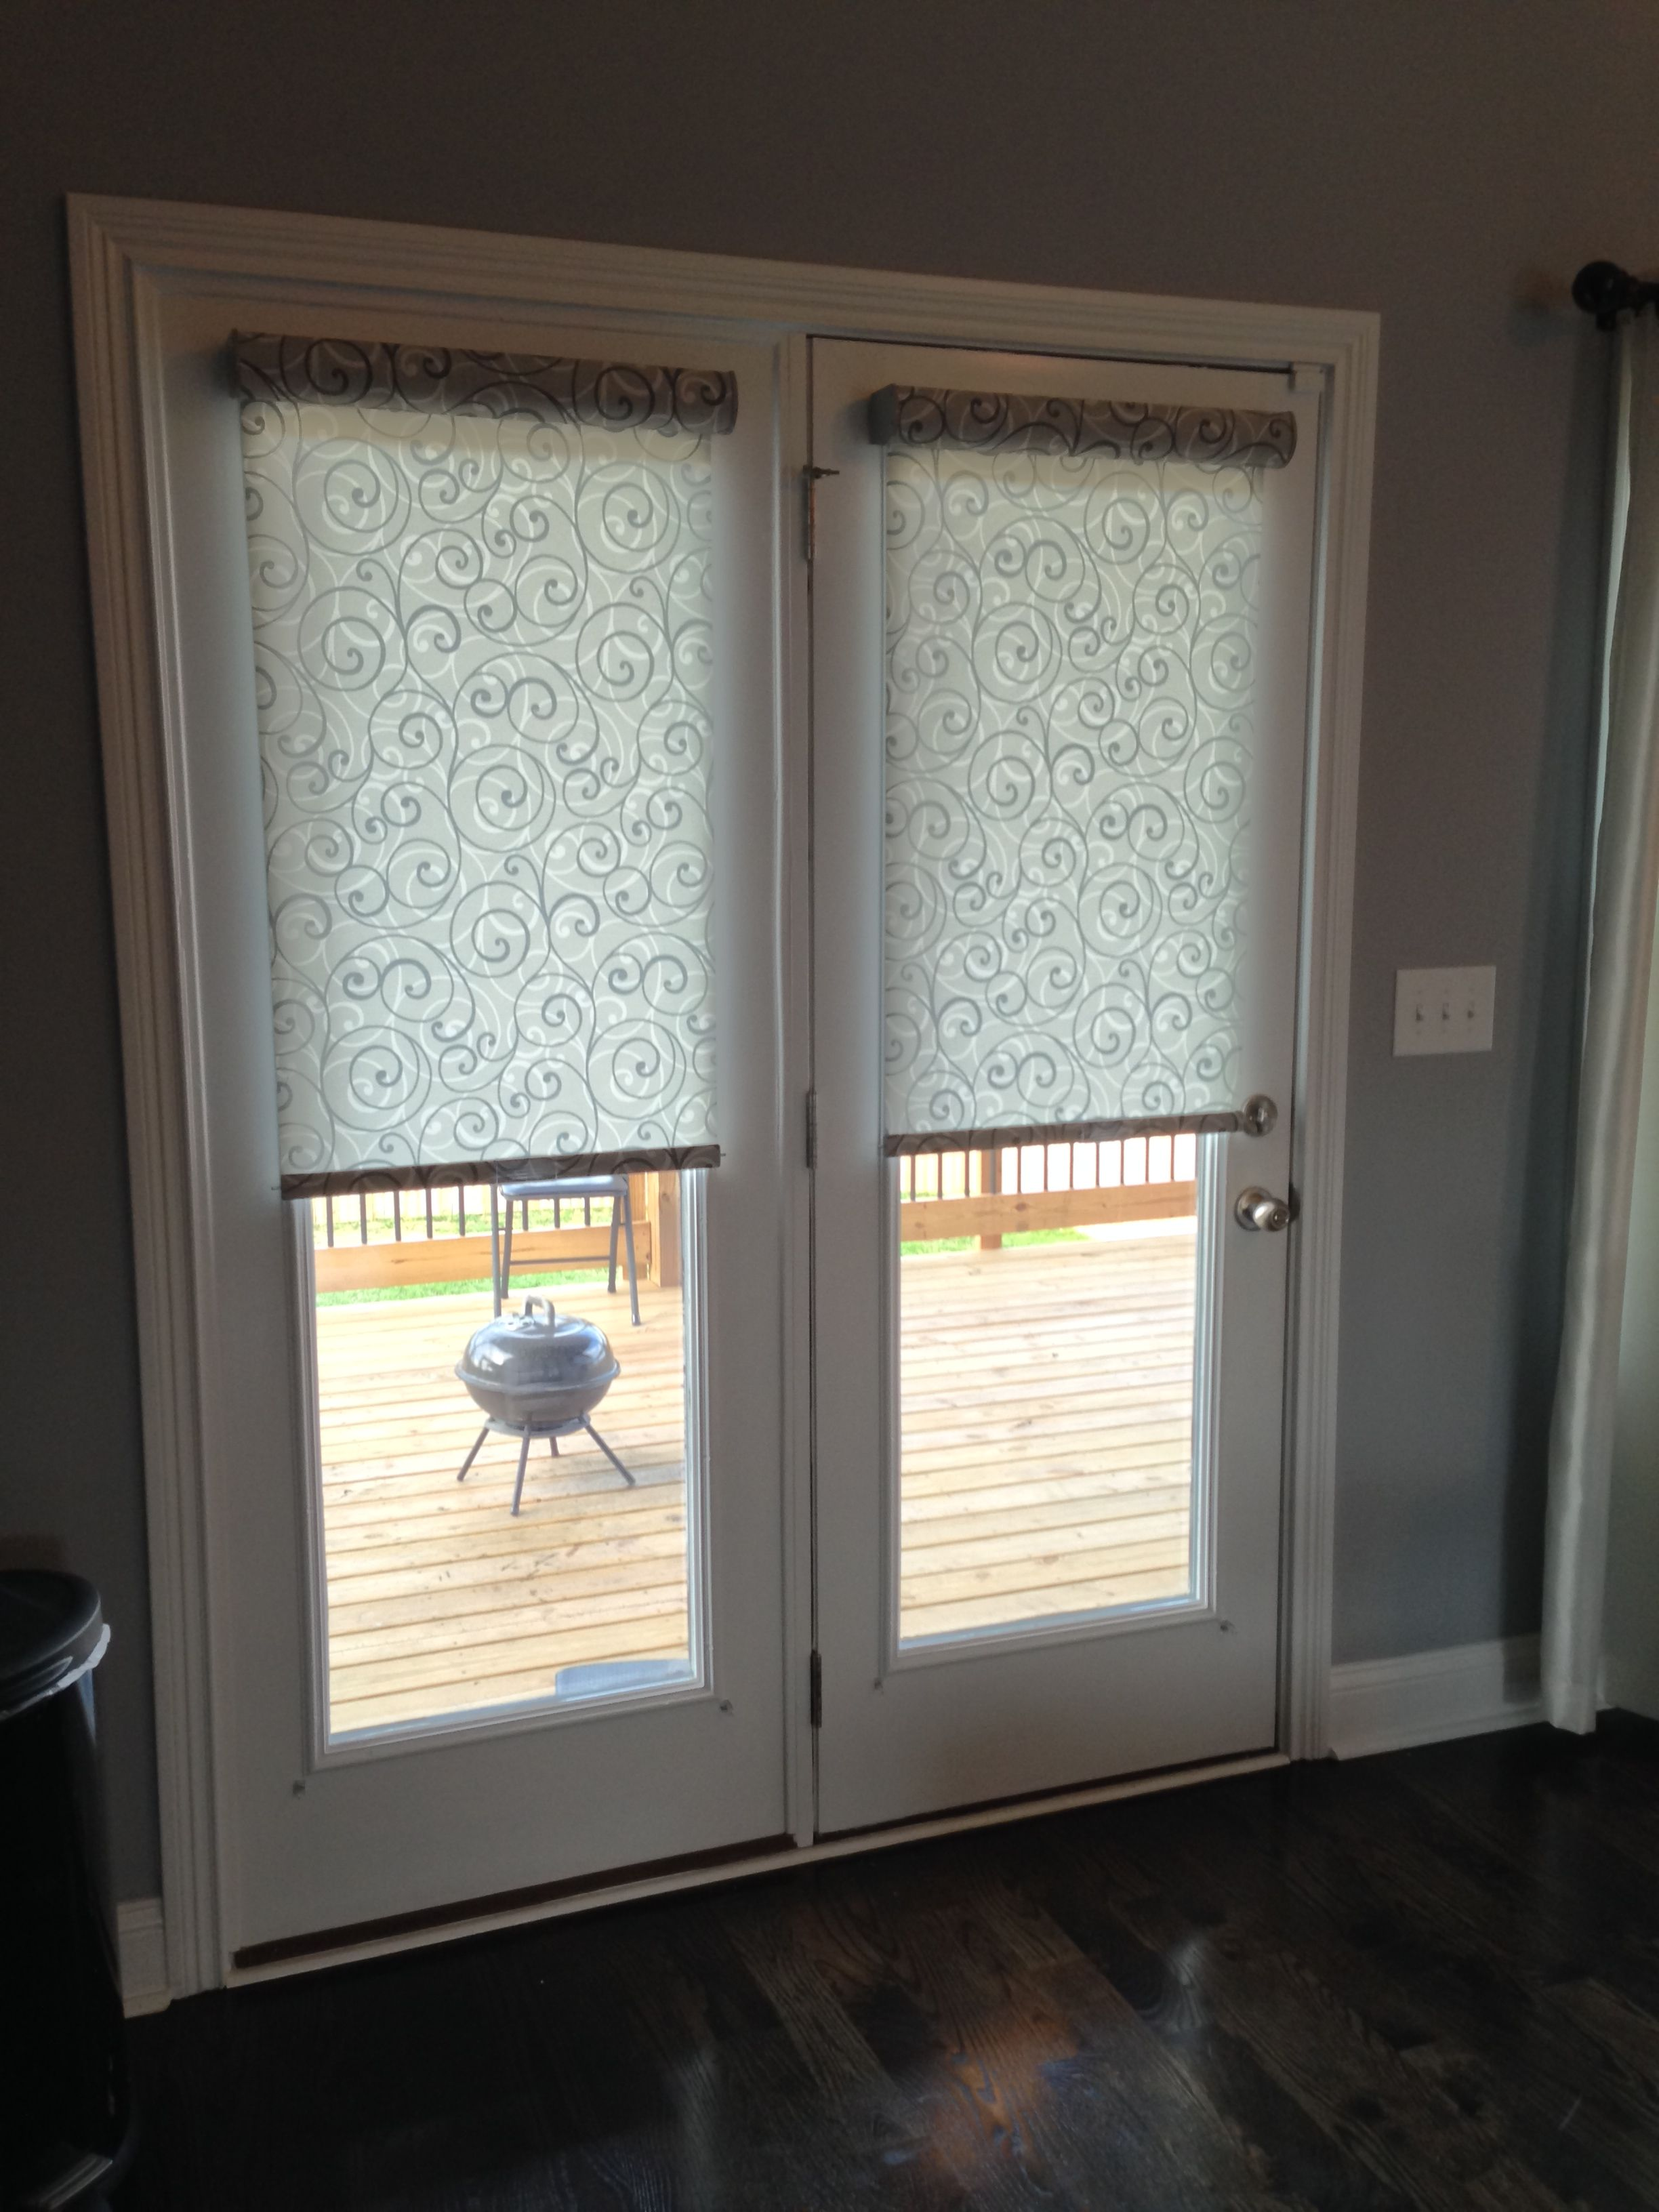 Roller shades ideas for the french doors pinterest window roller shades roller shadeswindow coveringsfrench doorsroller blinds rubansaba